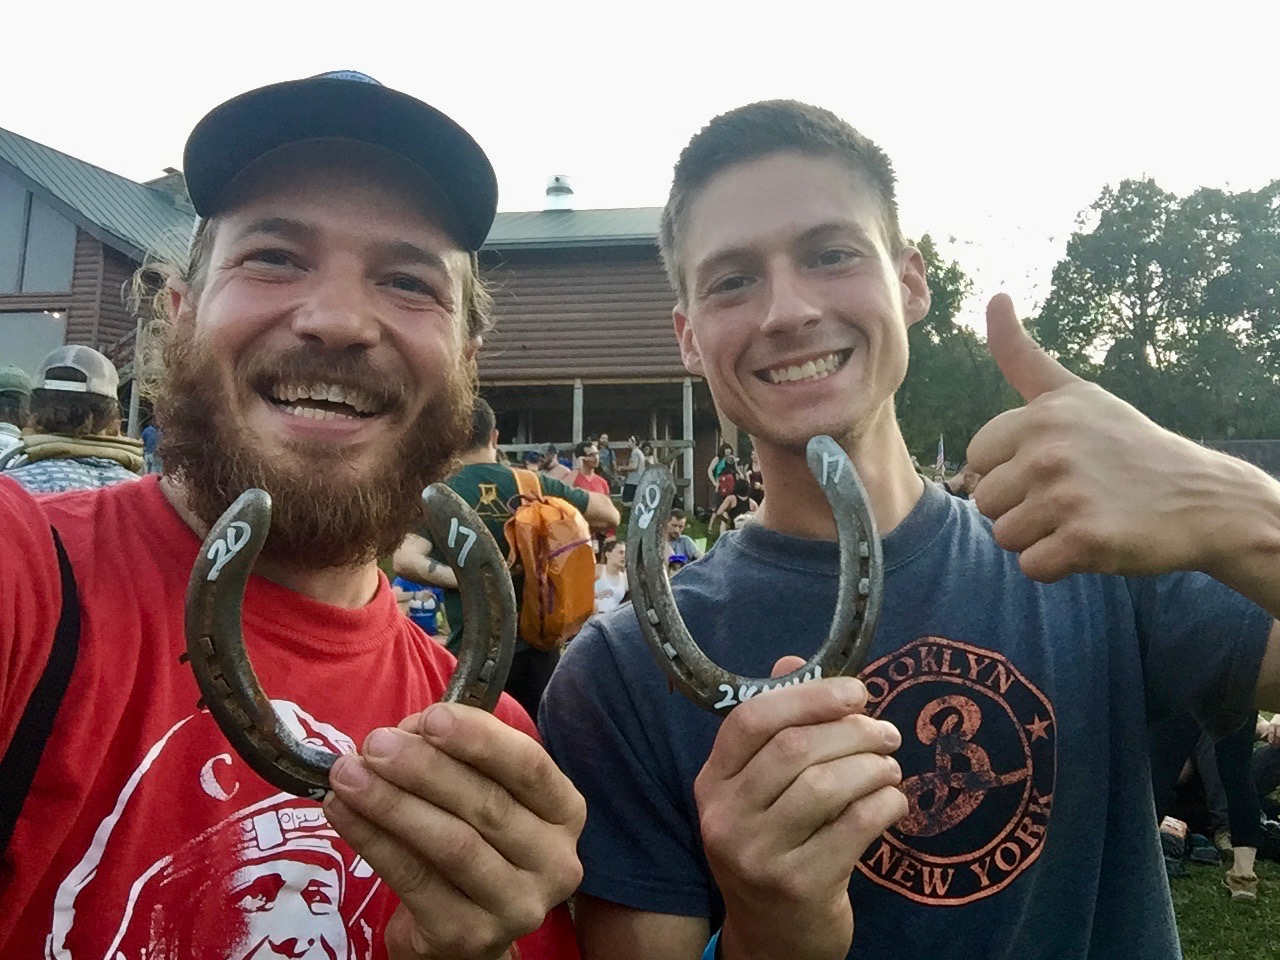 We earned our horseshoes! 24 hours of straight climbing